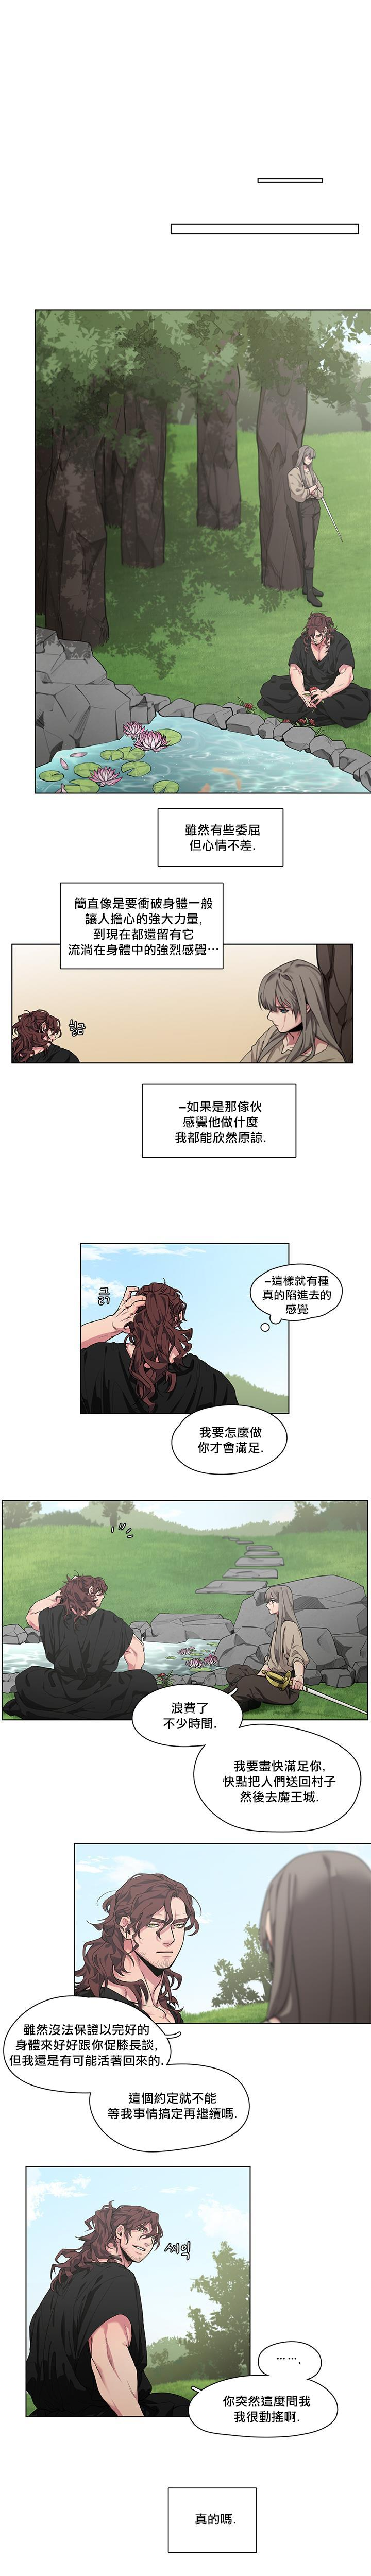 The Warrior and the Deity   勇者与山神 Ch. 2-6+加笔1+加笔2 25